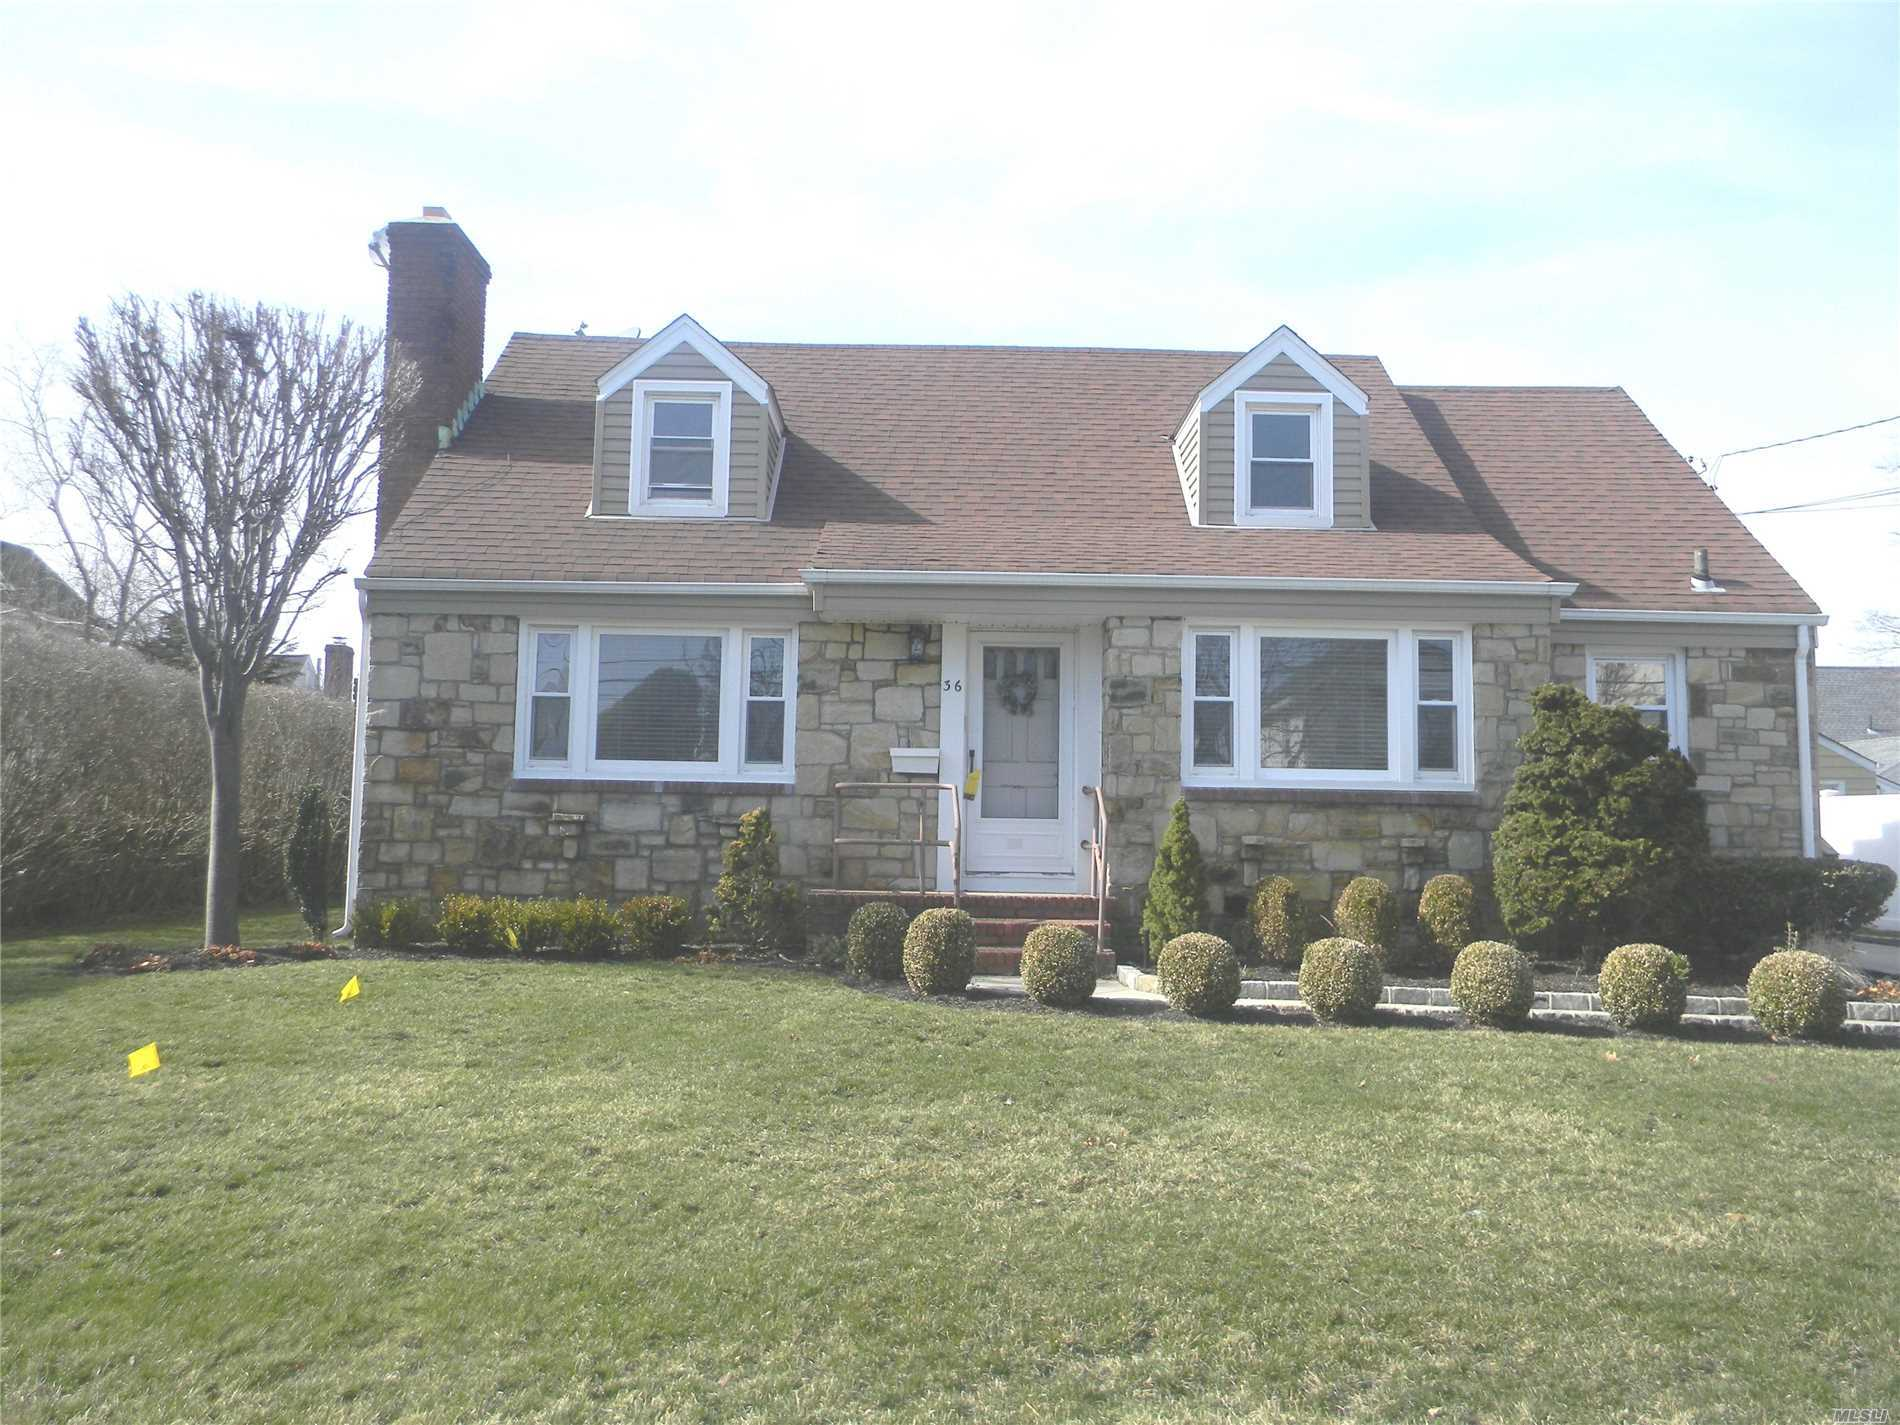 Spacious And All Updated Expanded Cape Including 4 Bedrooms, 2 Full Baths, Fireplace, Dining Room, Living Room, Sunroom,  Hardwood Floors, Gas Heat System. Washer & Dryer, Beautiful Yard. Unfinished Full Basement.